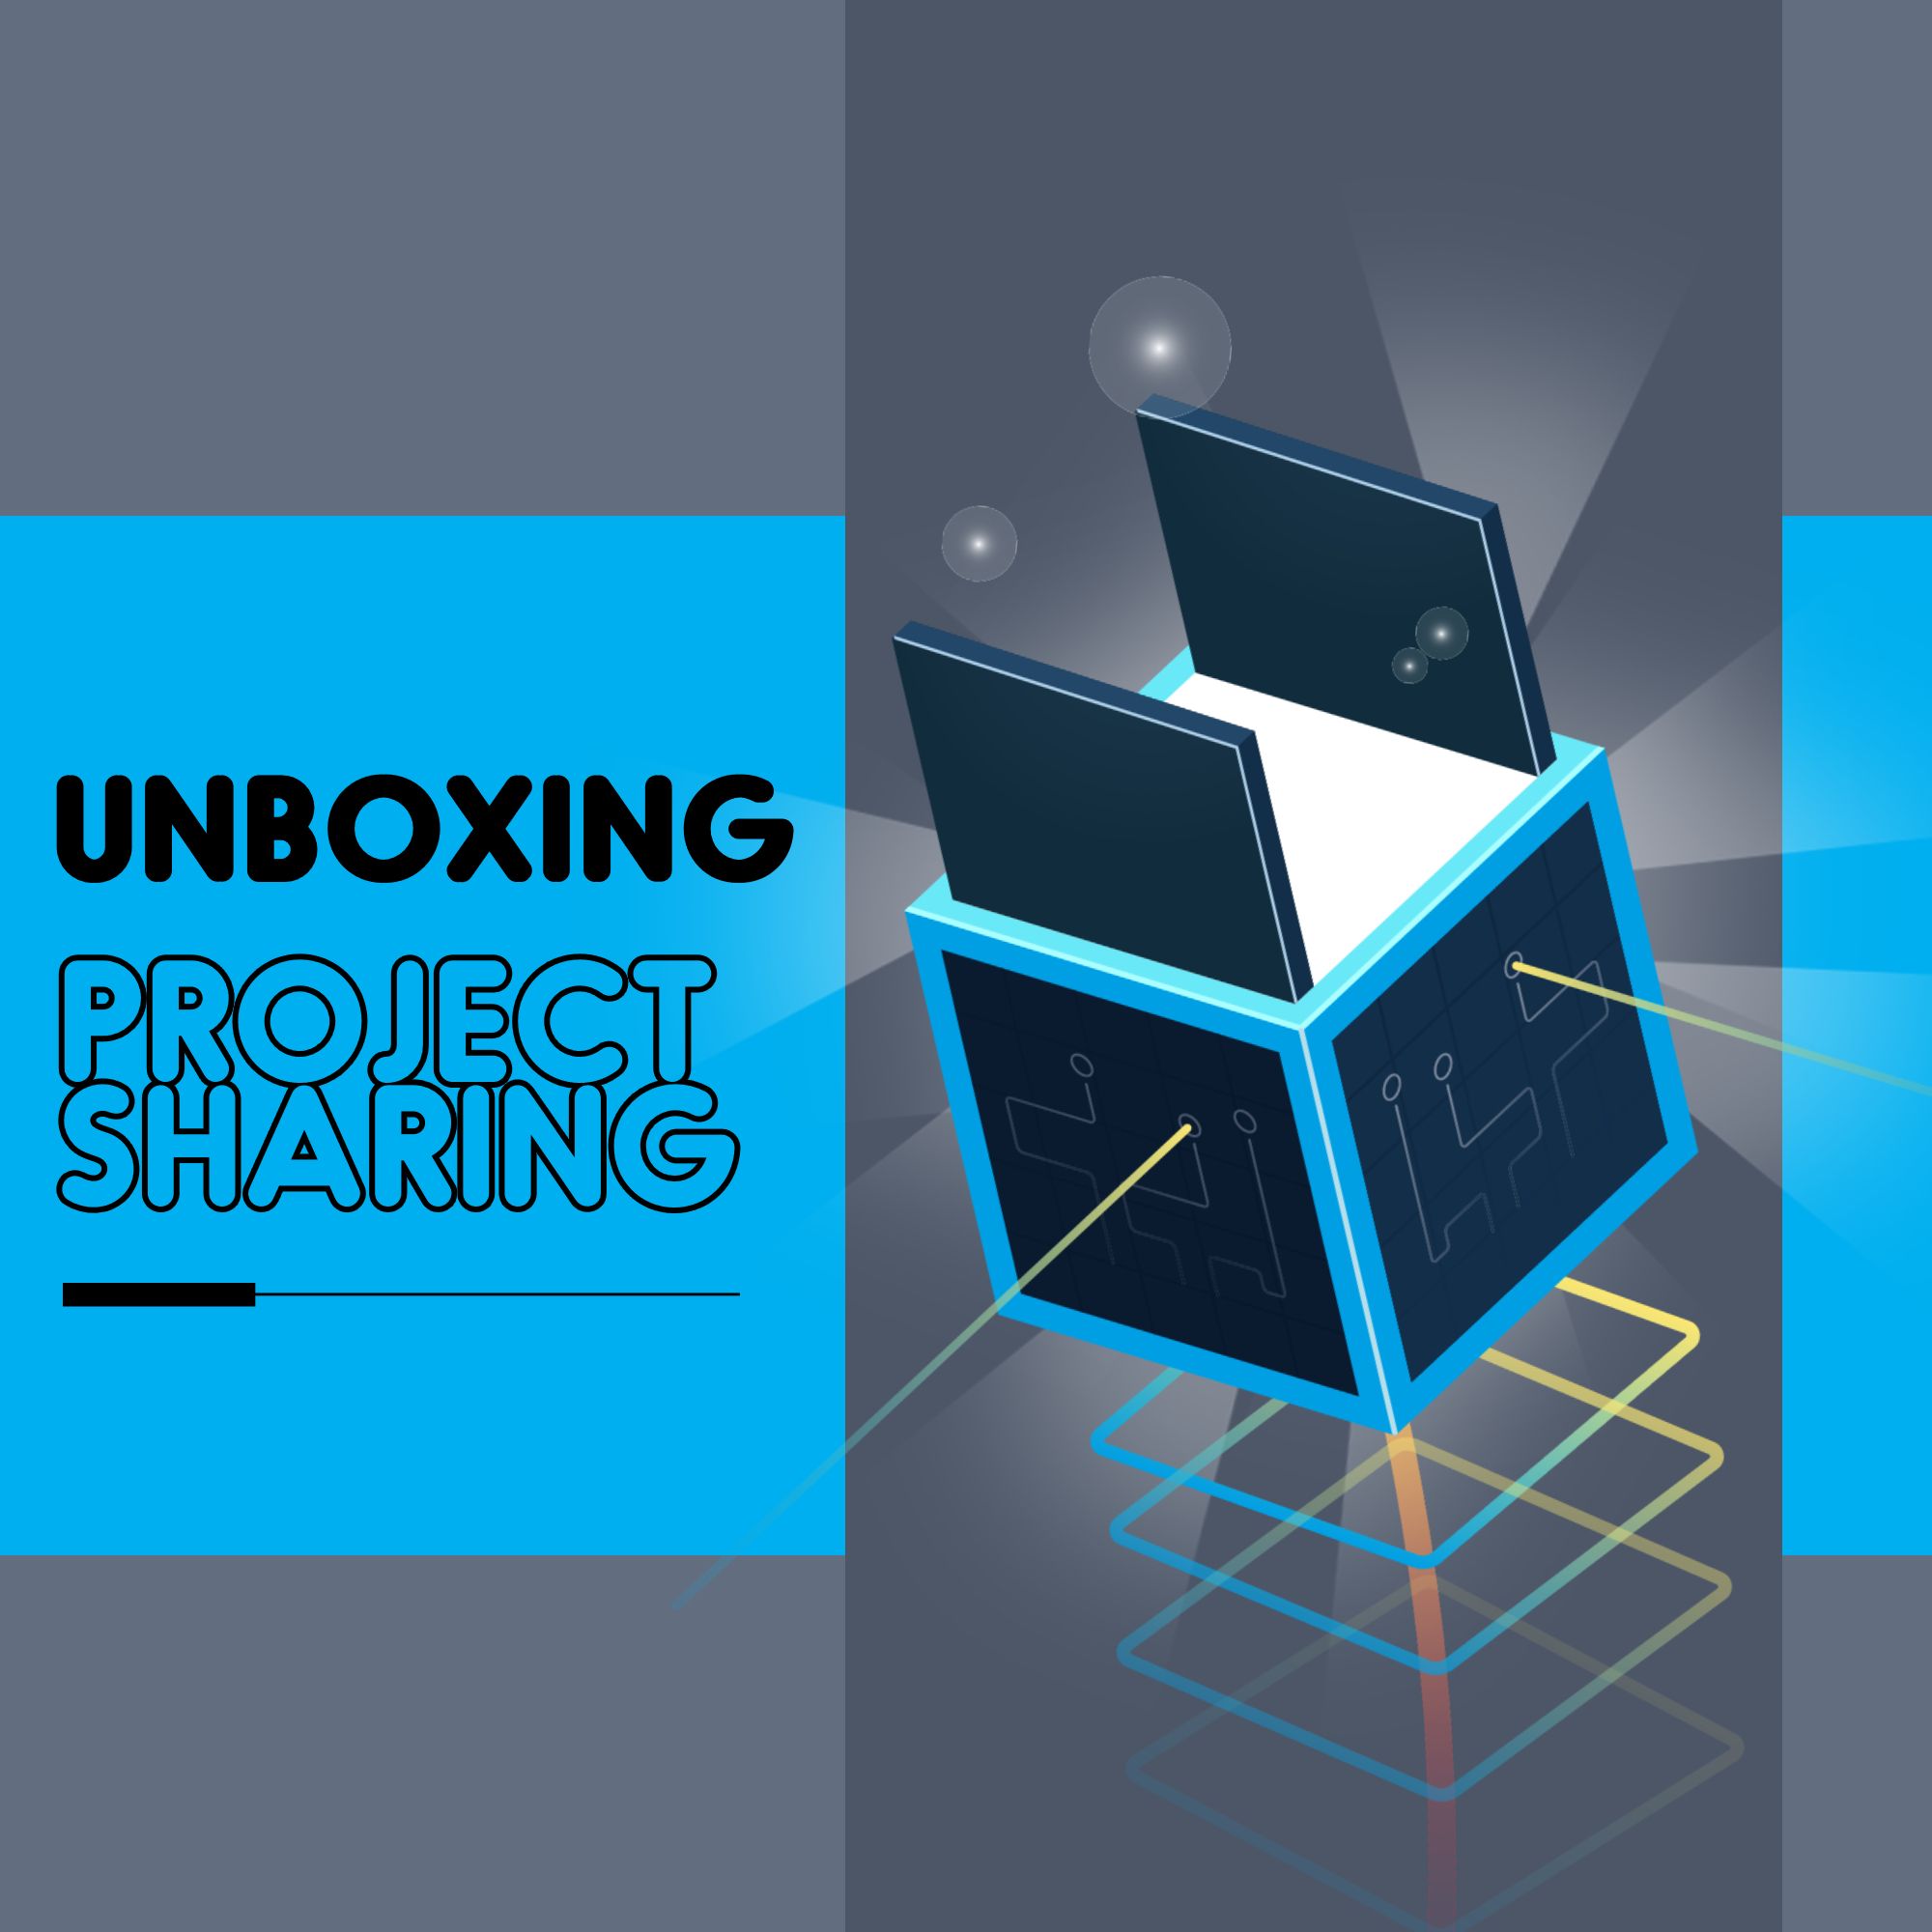 Unboxing & Project Sharing